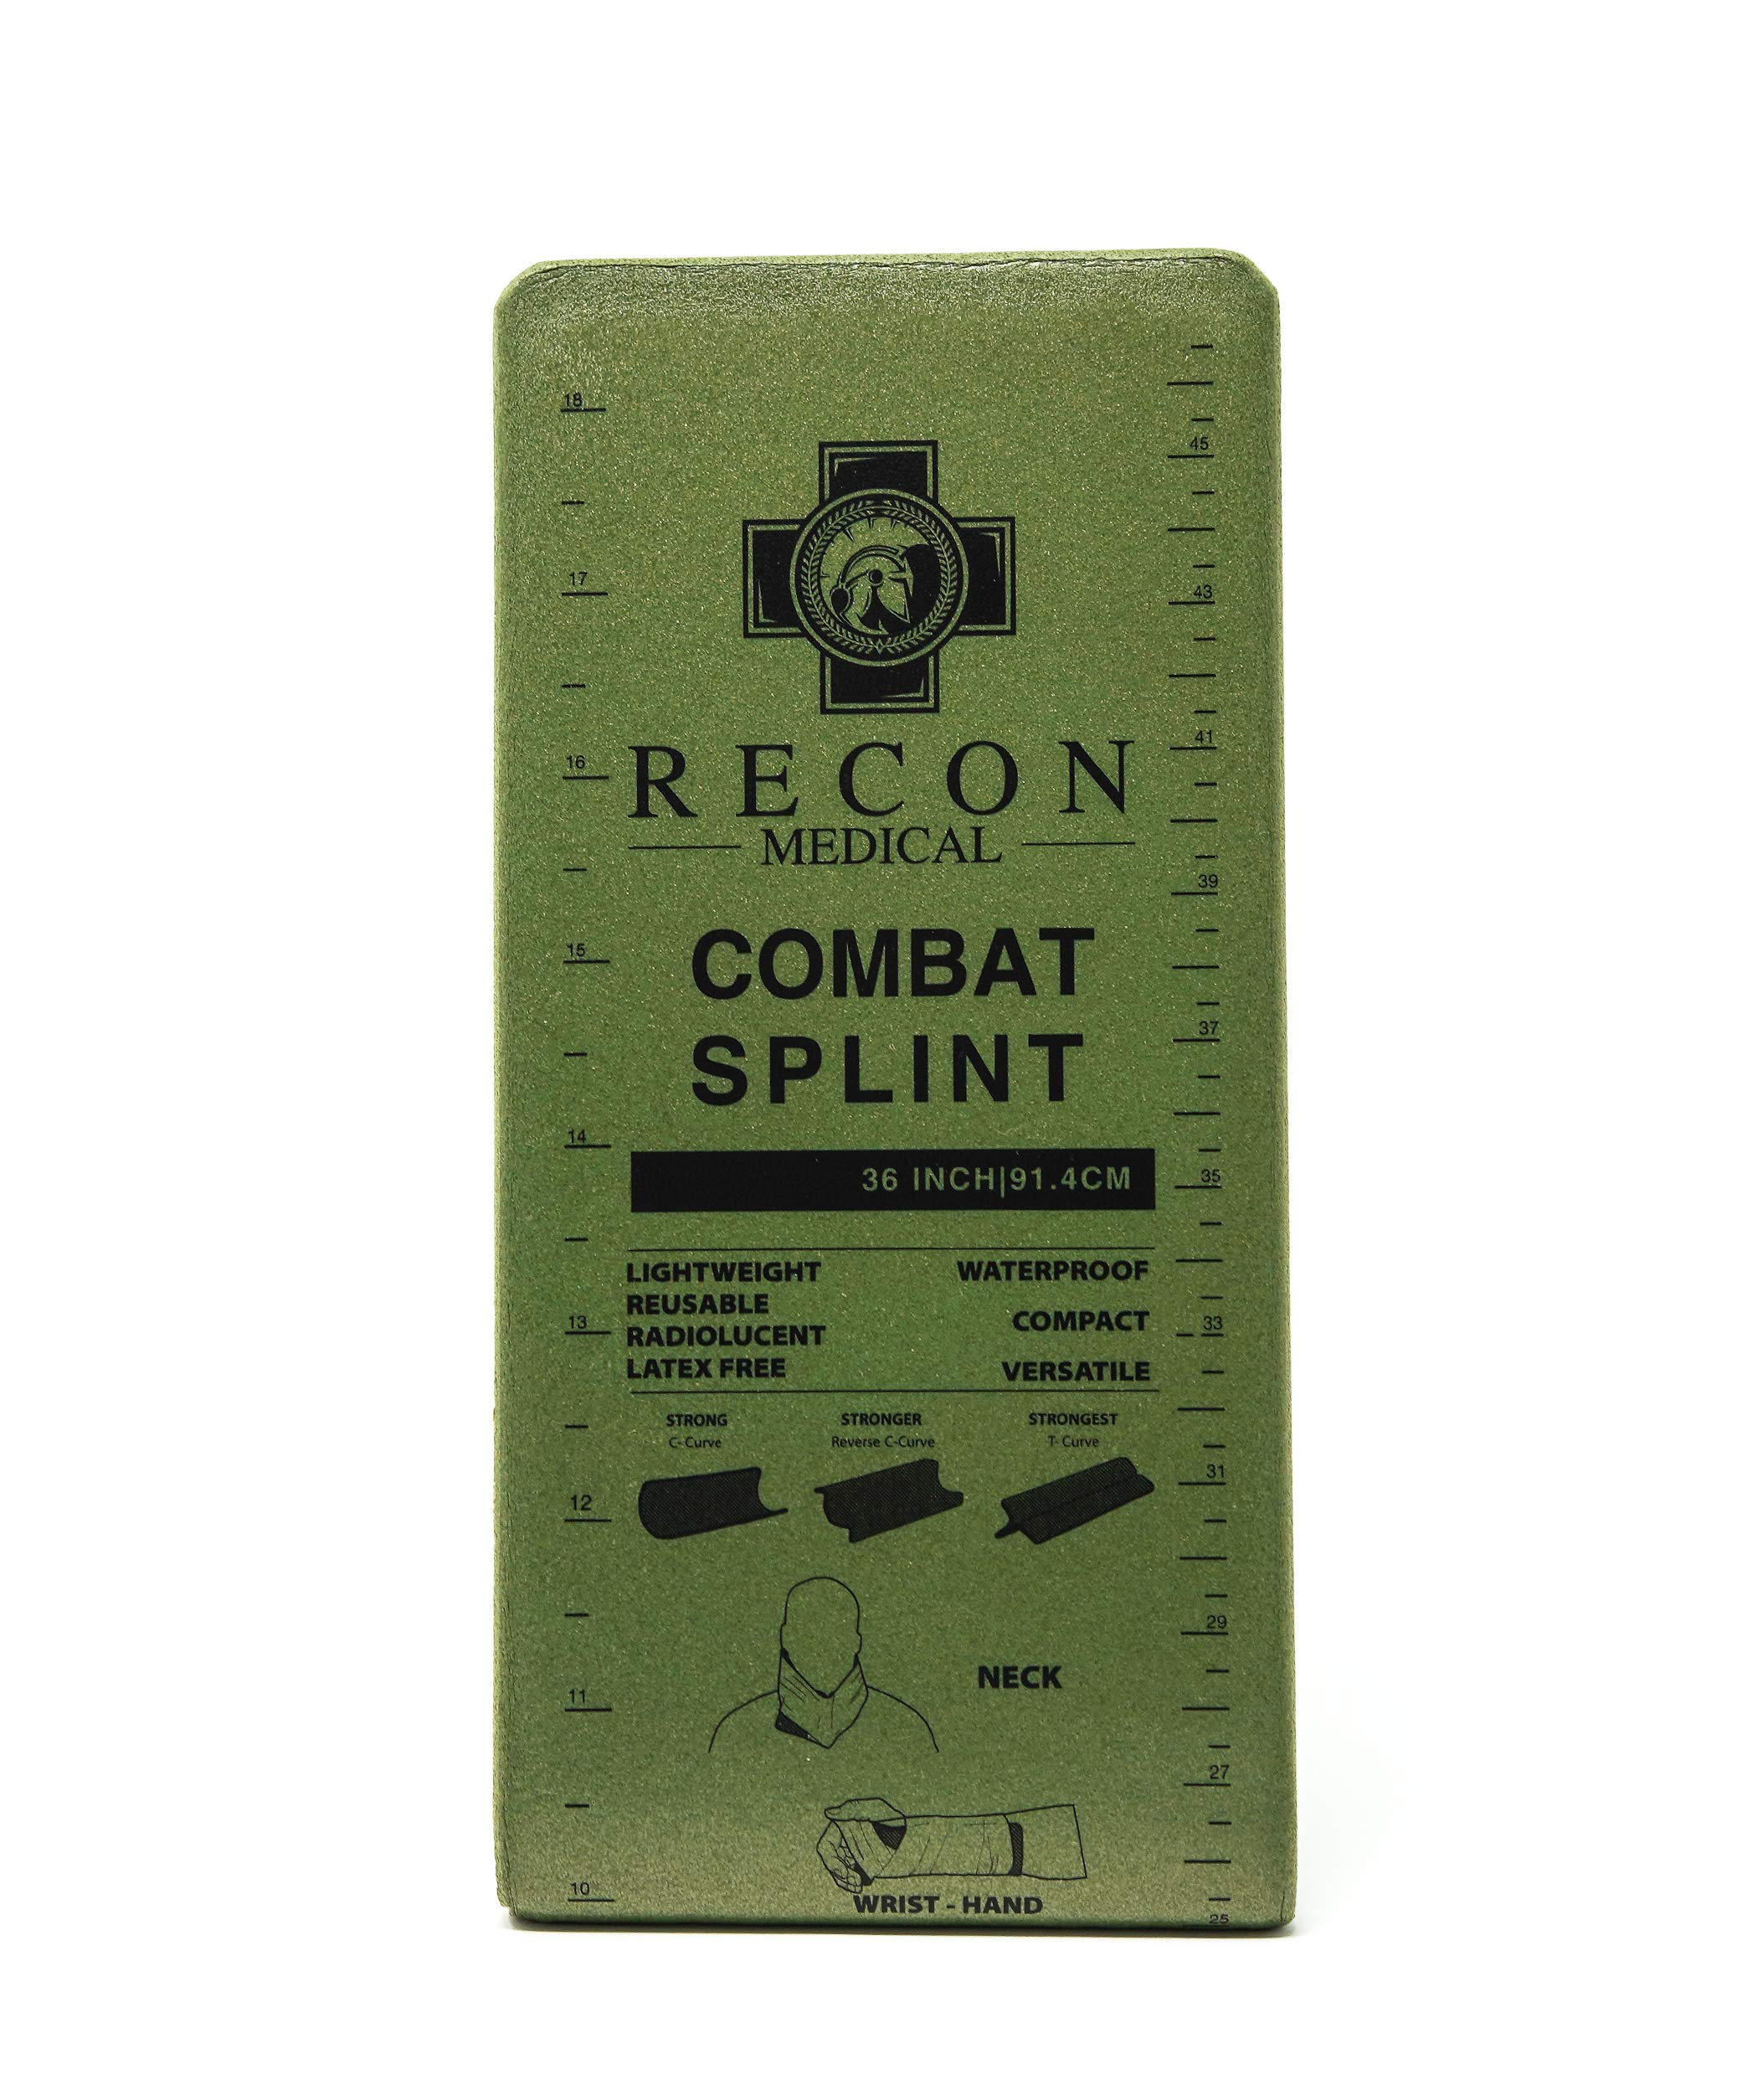 Combat Splint- (Olive Green) Recon Medical Combat Splint 36 inches Lightweight Reusable Waterproof First Aid Medical Tactical Registration Card! (1 Pack) (Flat Packaging 4.25inchsX9inches)